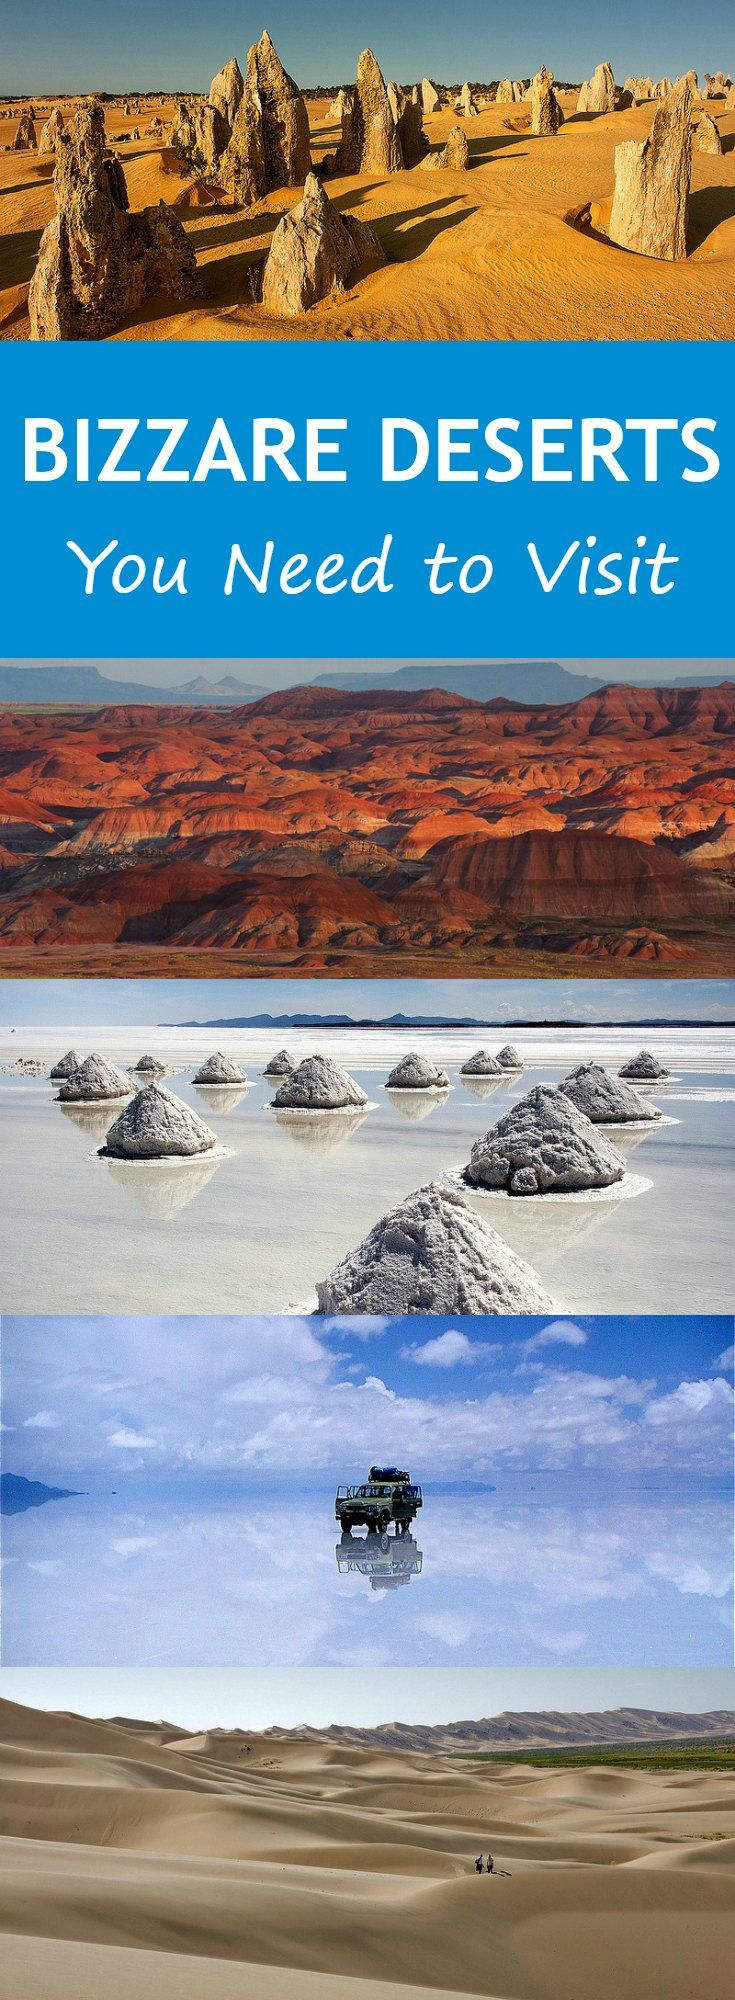 Bizarre and Unique Deserts You Need to Visit